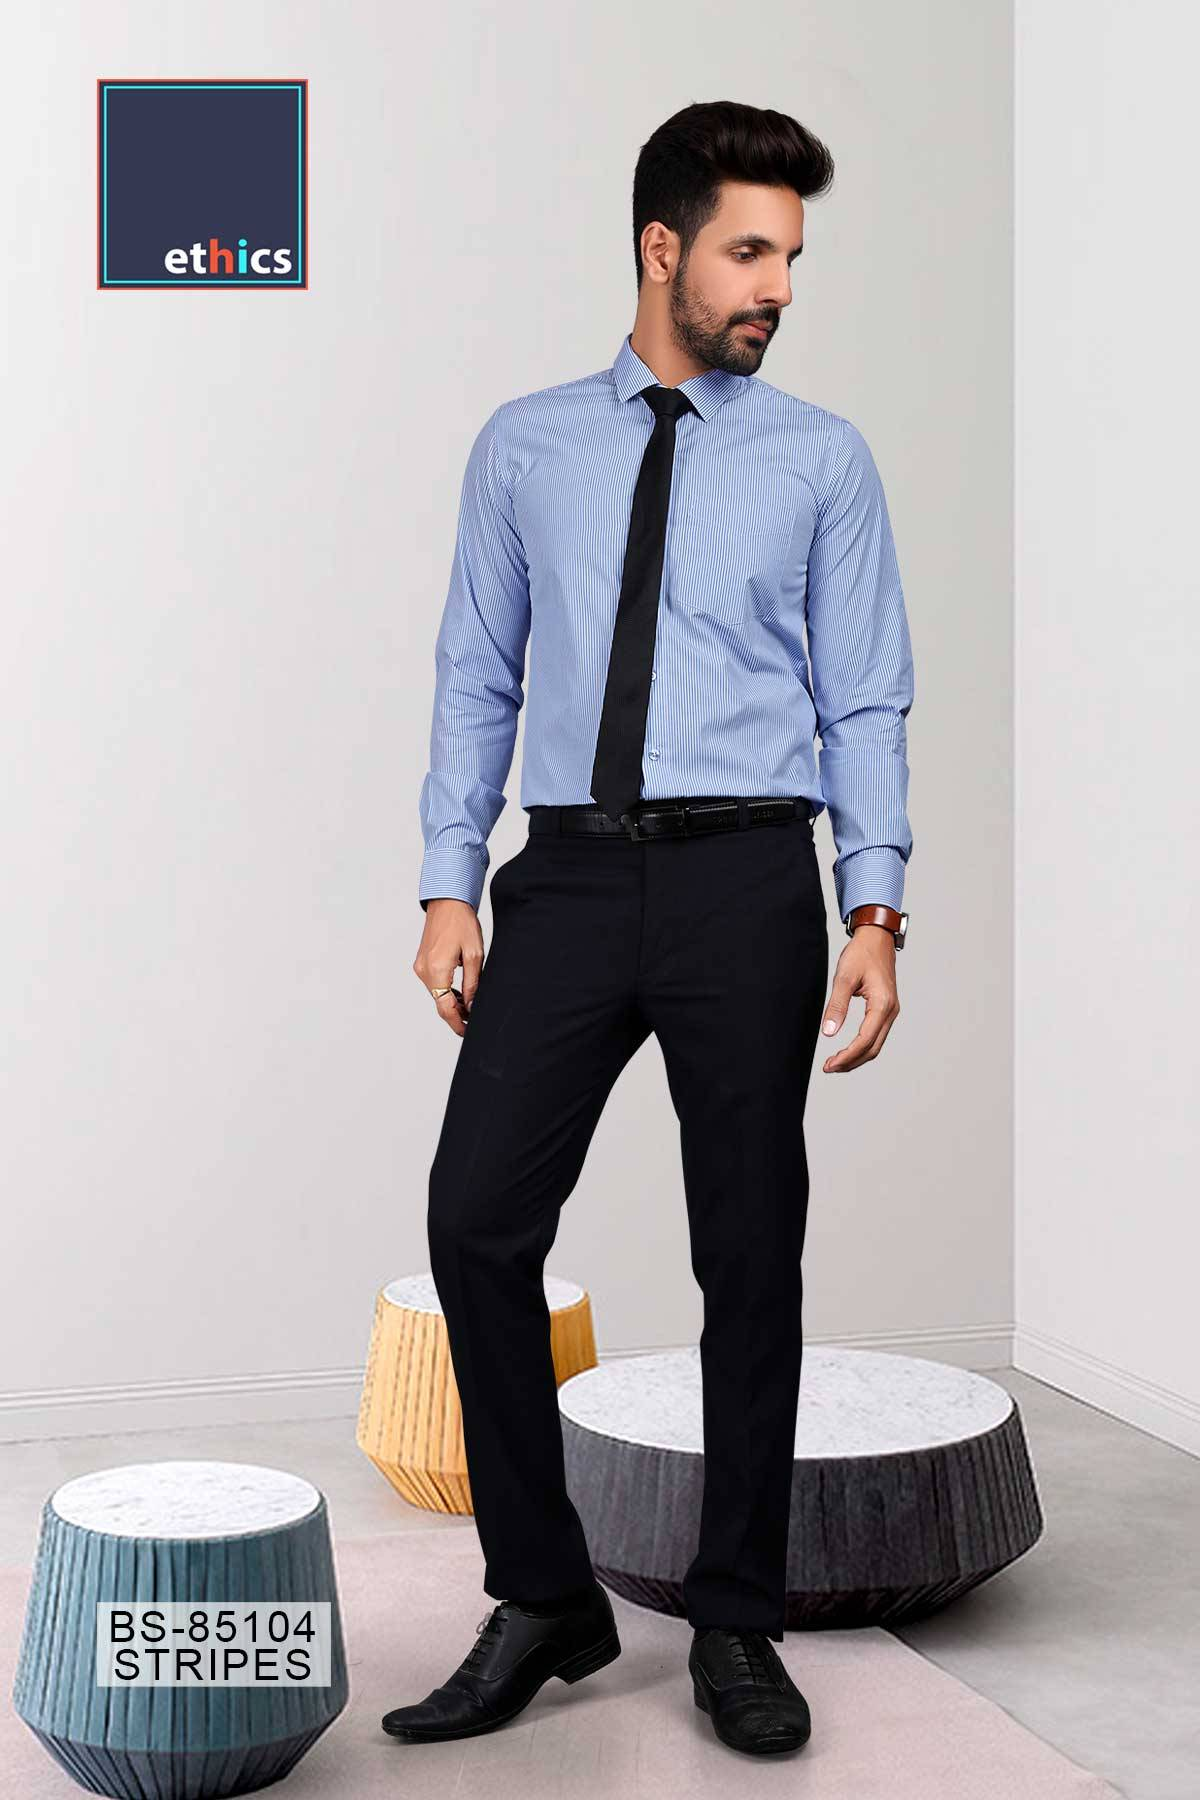 Blue Stripes Uniform Shirts Formal Workwear for Corporate Office BS-85104